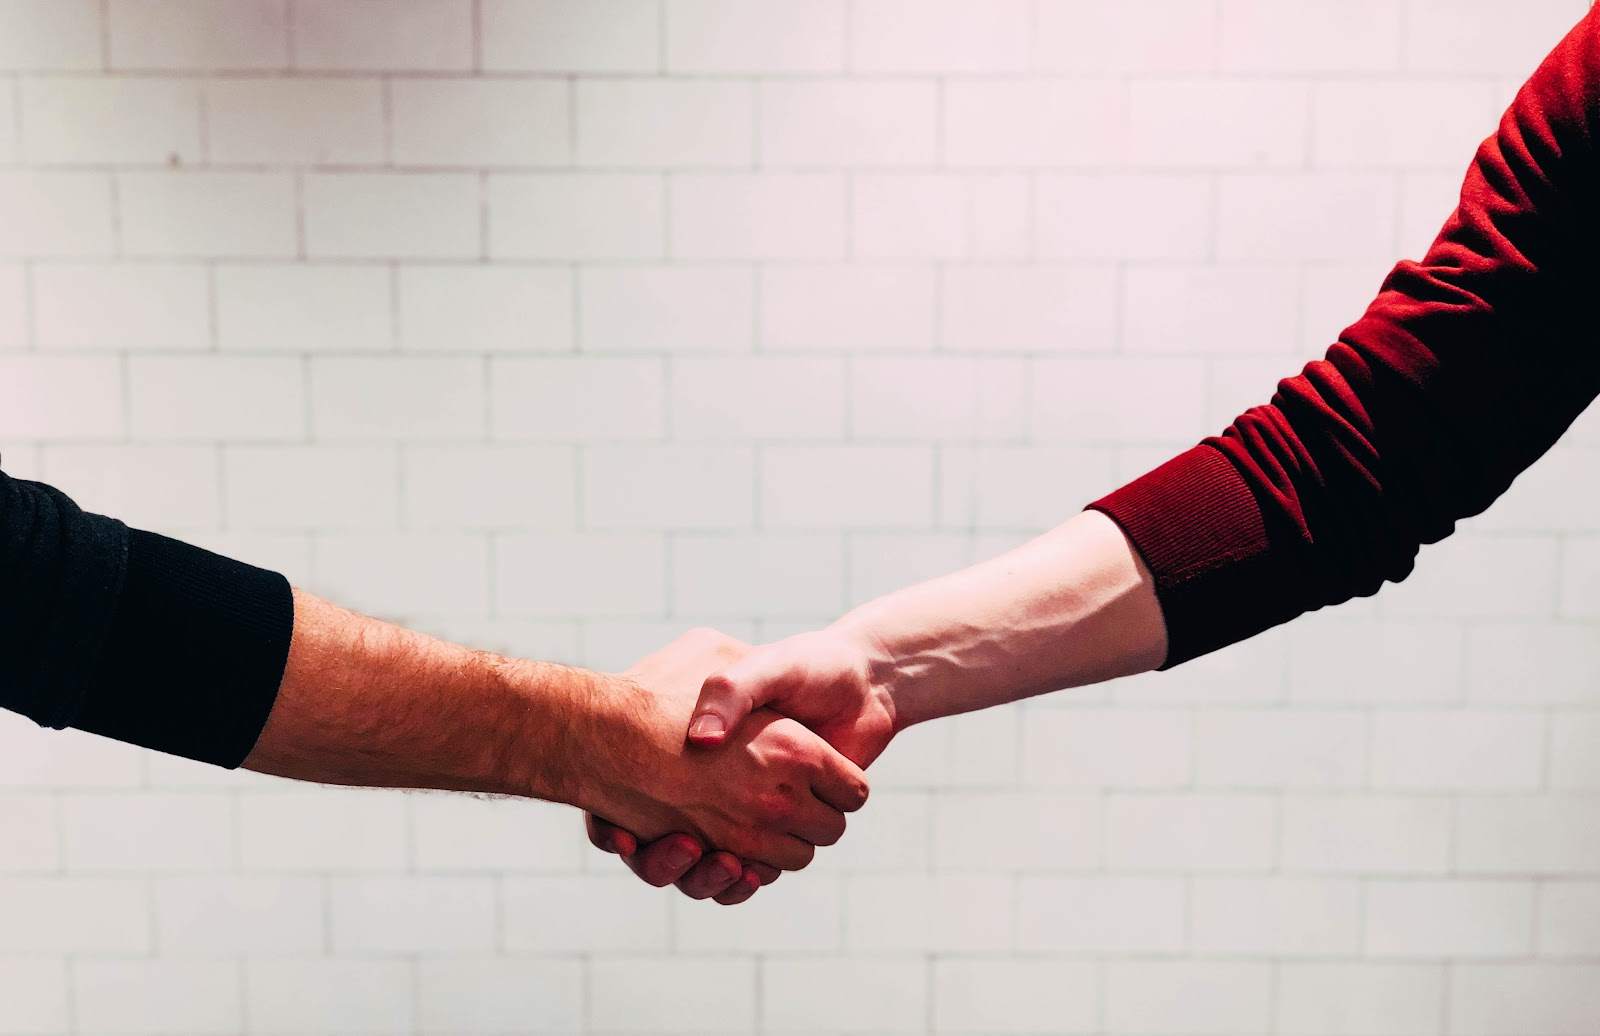 Two people shaking each other's hand